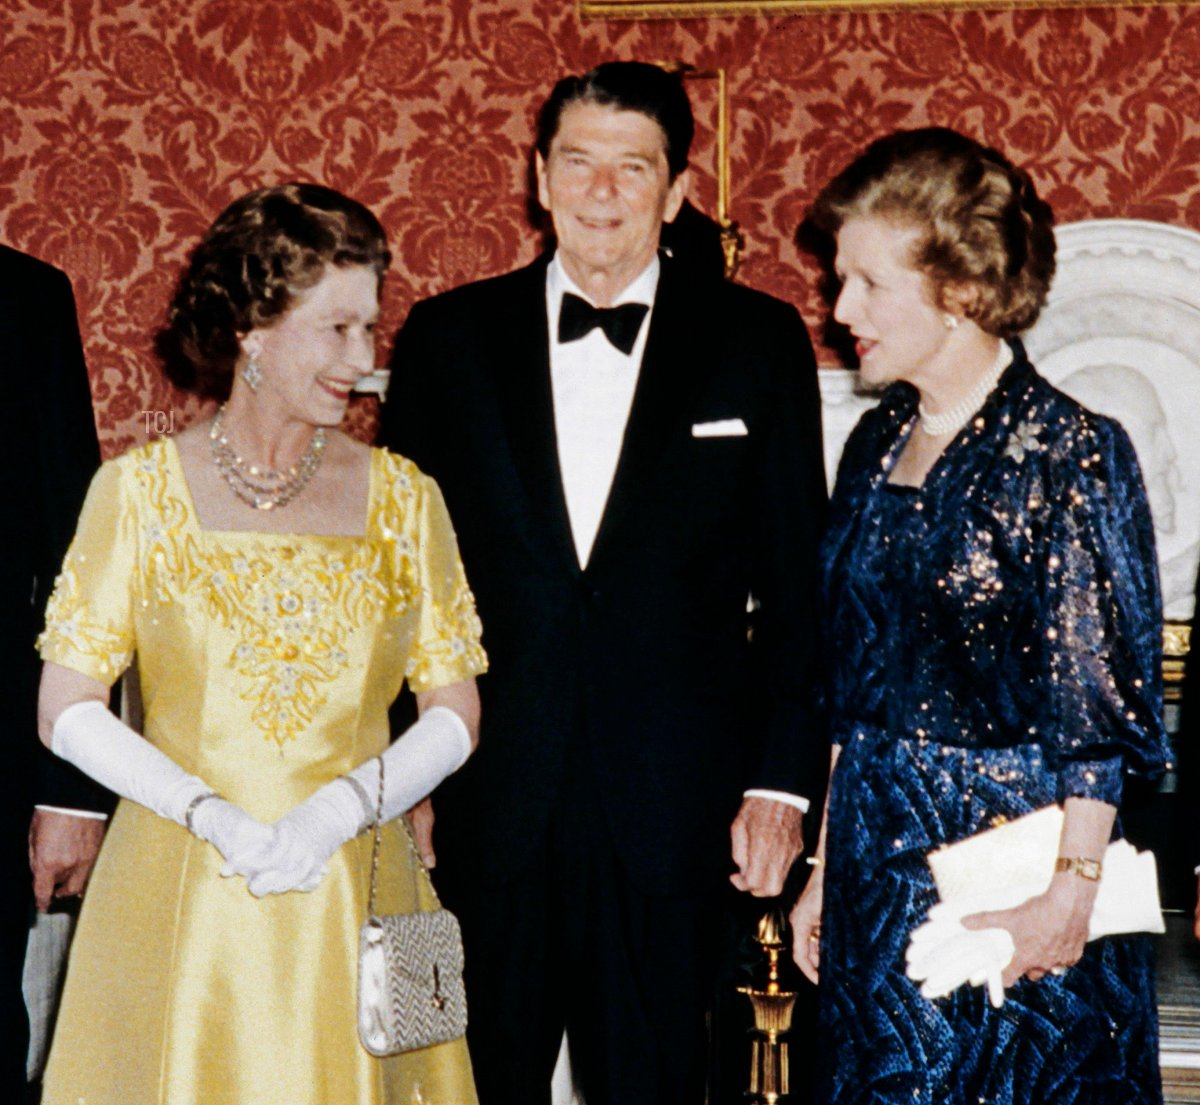 Britain's Queen Elizabeth II poses on June 9, 1984 at Buckingham Palace with Economic Summit leaders: (from L to R) French President François Mitterrand, Japanese Prime Minister Yasuhiro Nakasone, British Prime Minister Margaret Thatcher, Us President Ronald Reagan, Chancelor Helmut Kohl of West Germany and Italian Prime Minister Bettino Craxi. - The seven industralized nations adopted three separate statements, on east-west relations, the gulf conflict and international terrorism